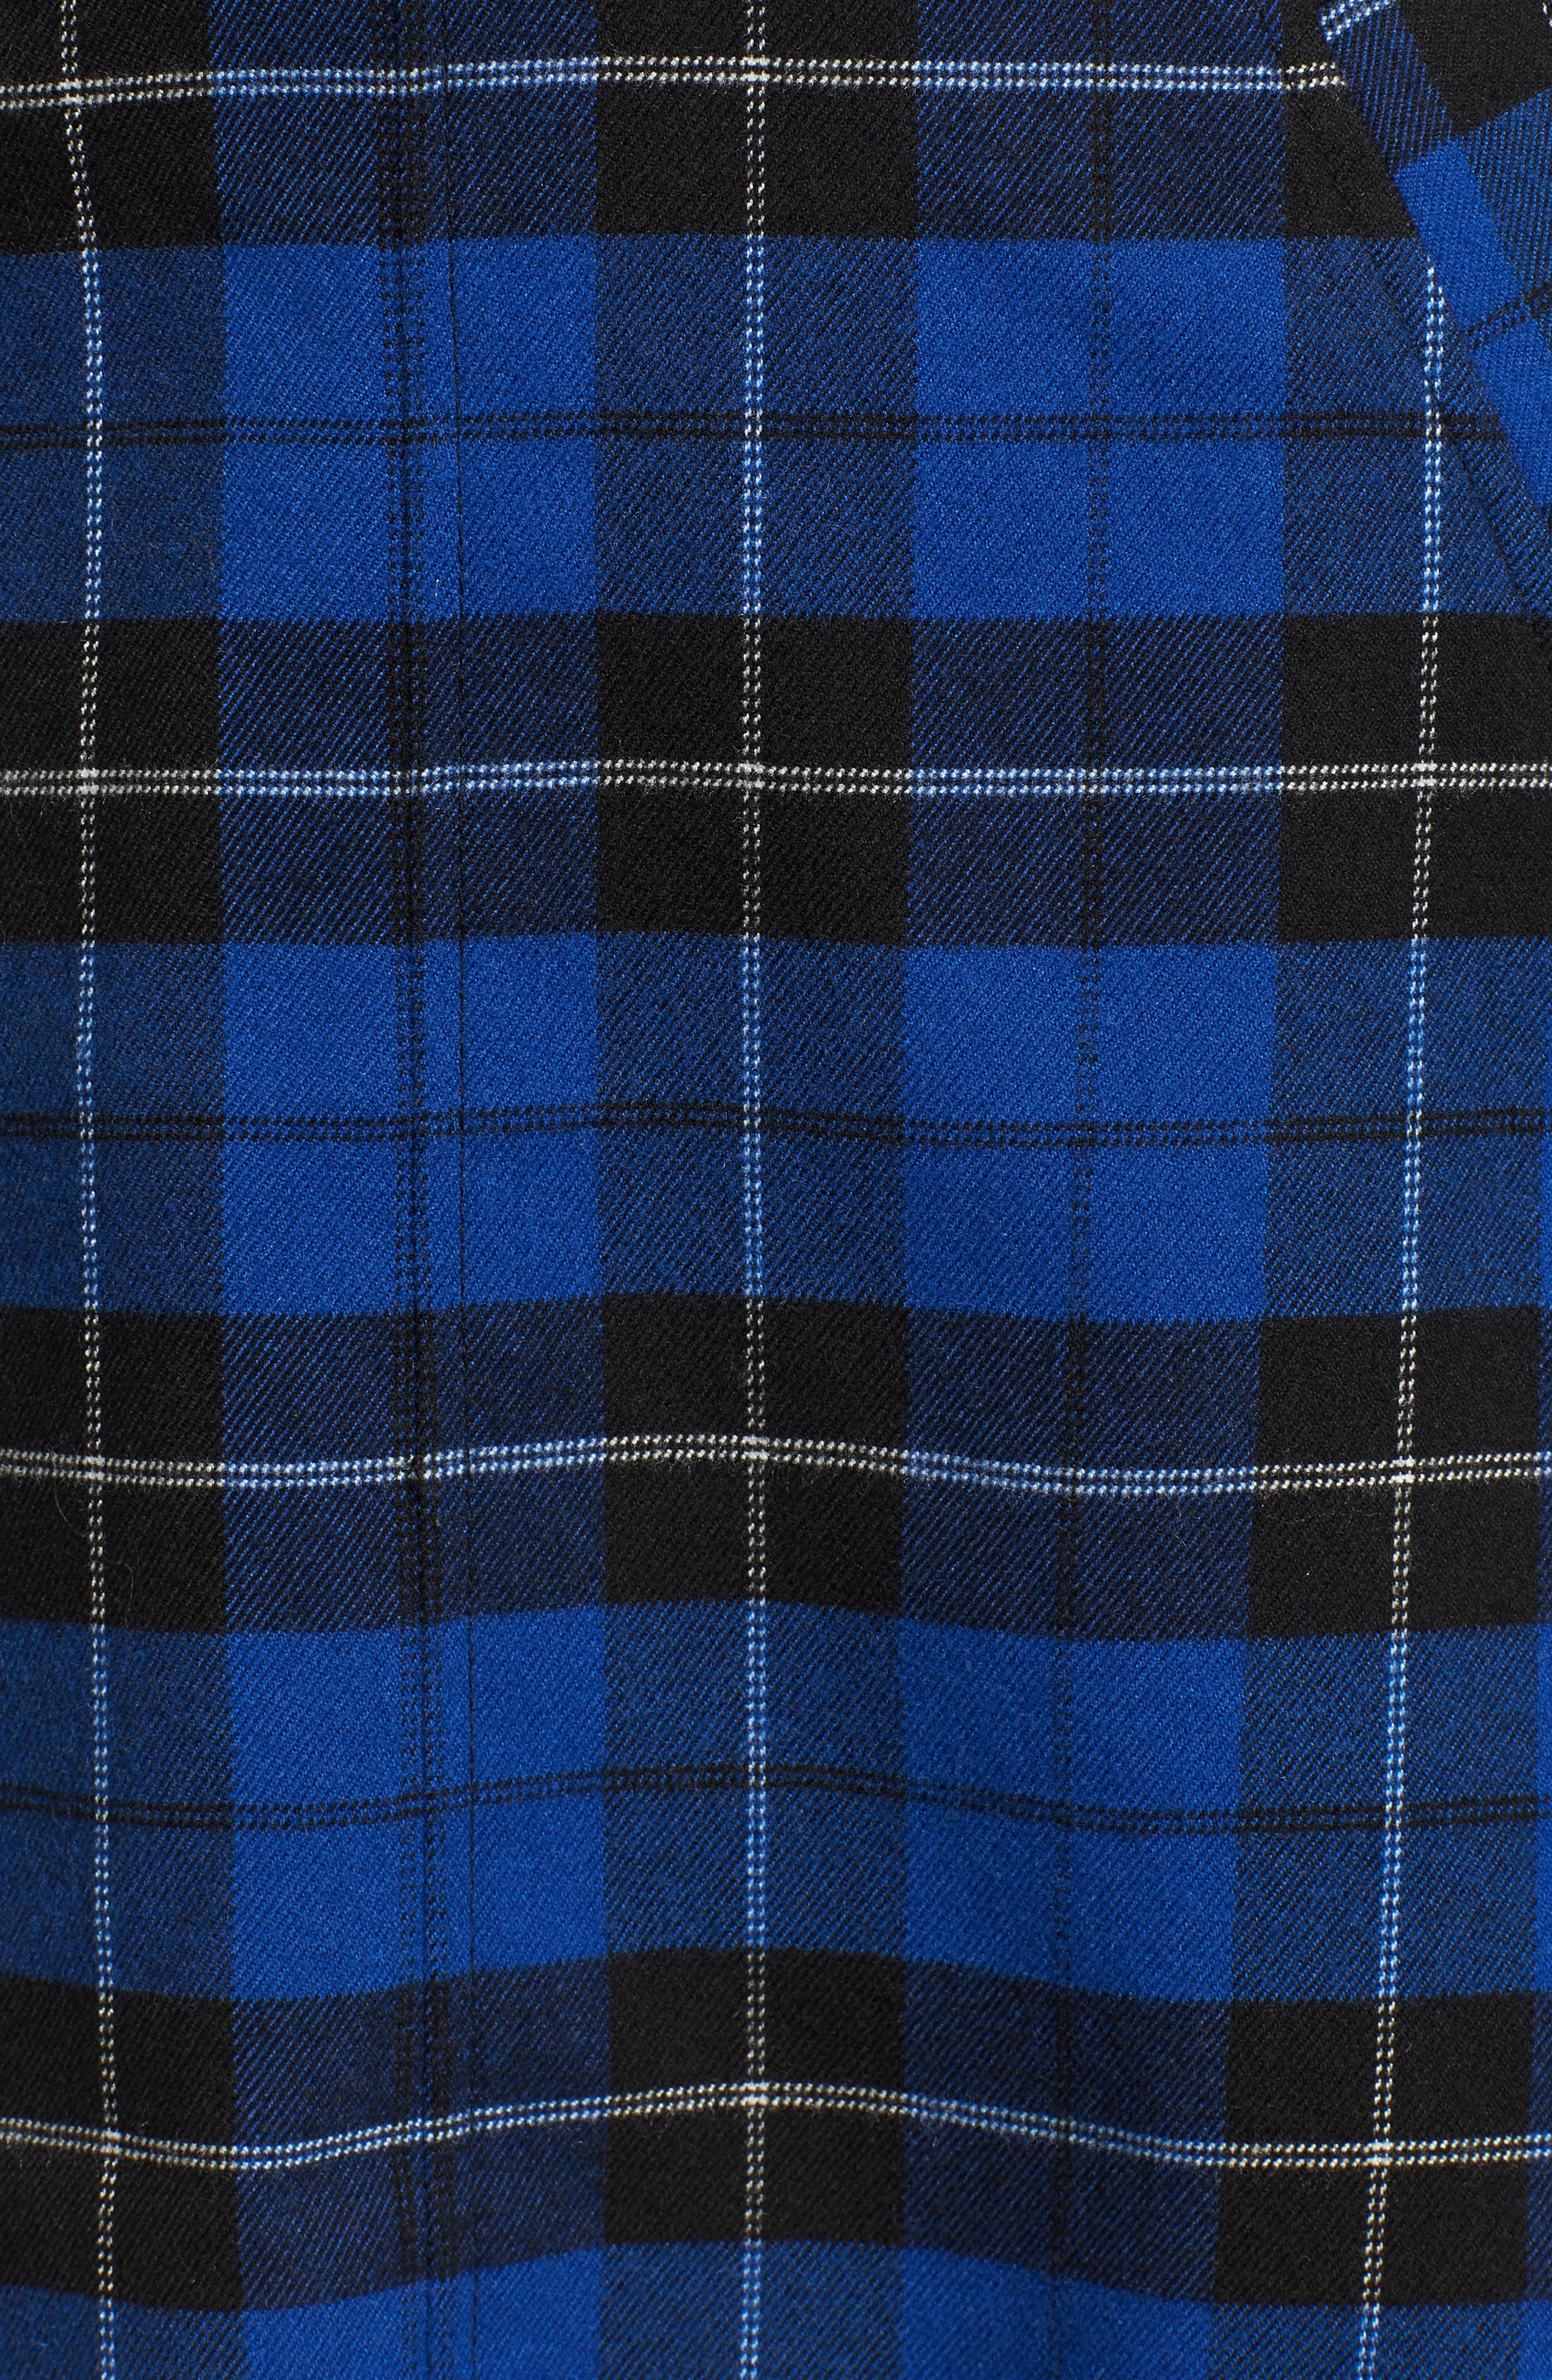 Belted Plaid Skirt,                             Alternate thumbnail 5, color,                             BLUE MAZARINE HAYDEN PLAID